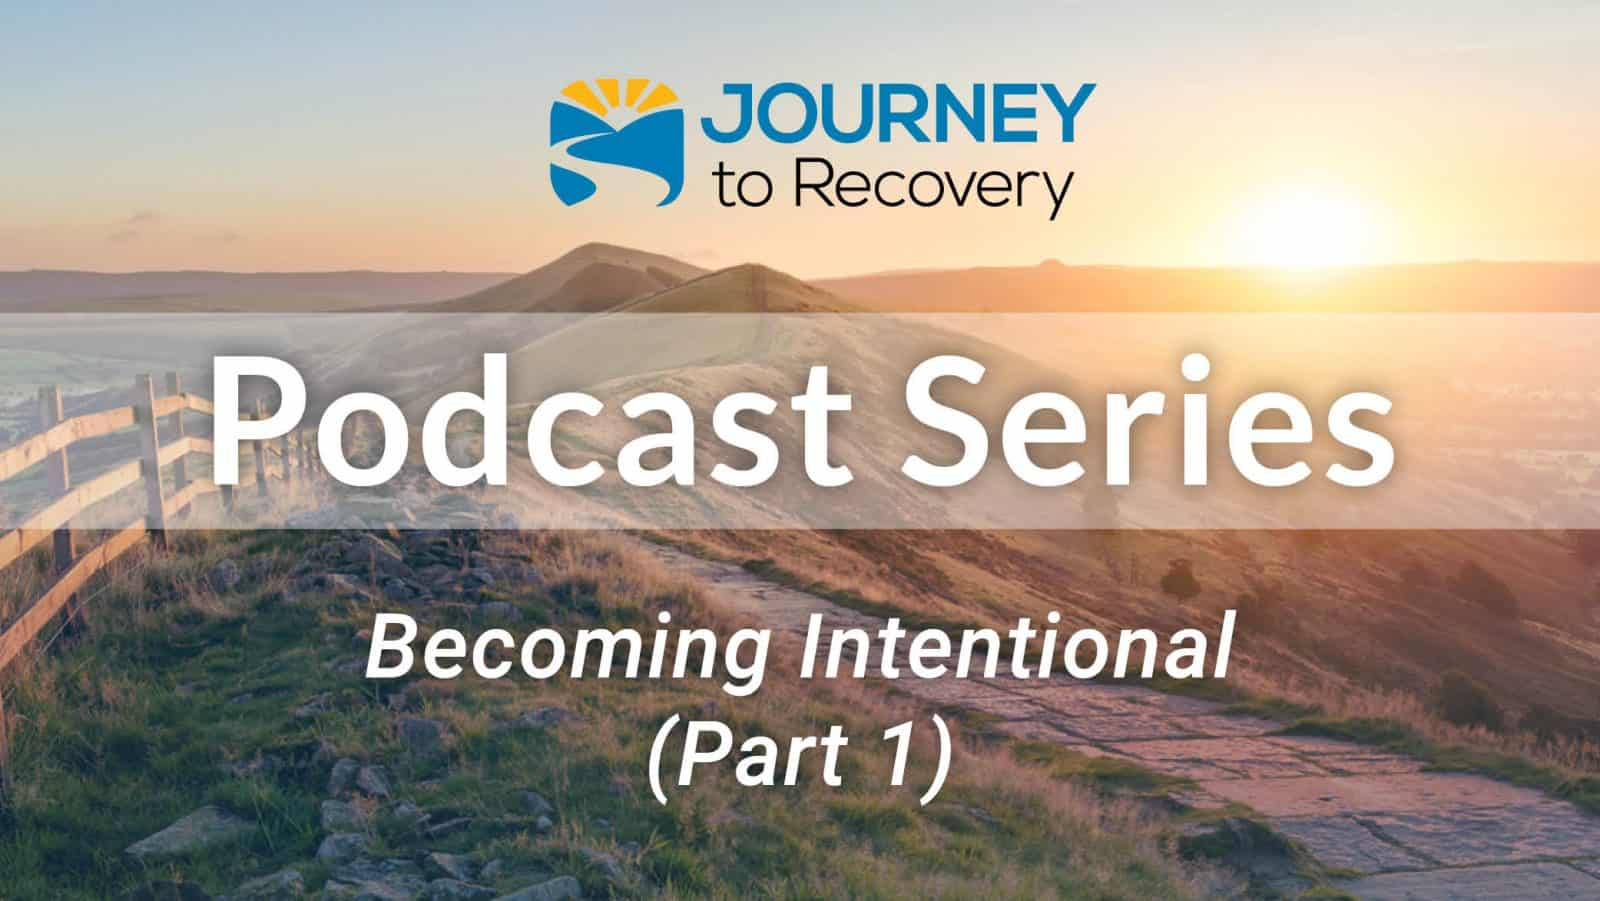 Becoming Intentional (Part 1)